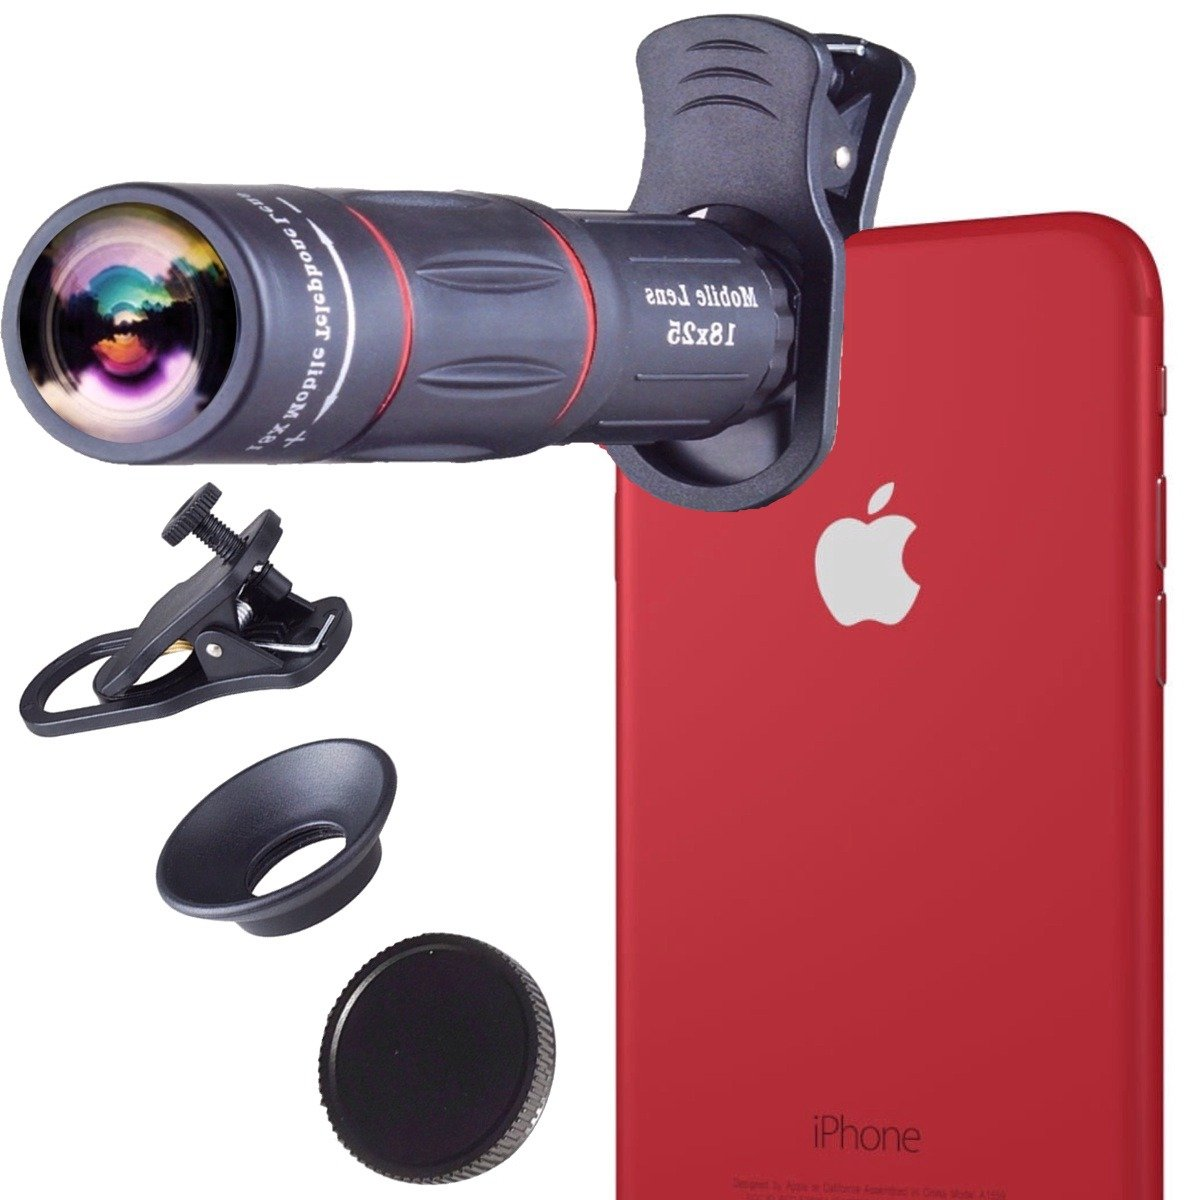 Skyfall 18X Zoom iPhone Lens I Camera Lens Optical Manual I Telescope Lens with Clamp Clip-on for iPhone 8 plus/8/7 Plus/ 7/ iPhone 6s Plus/ 6s/ 6 Plus/ 6/ 5s/ 5 and other smartphones by Skyfall